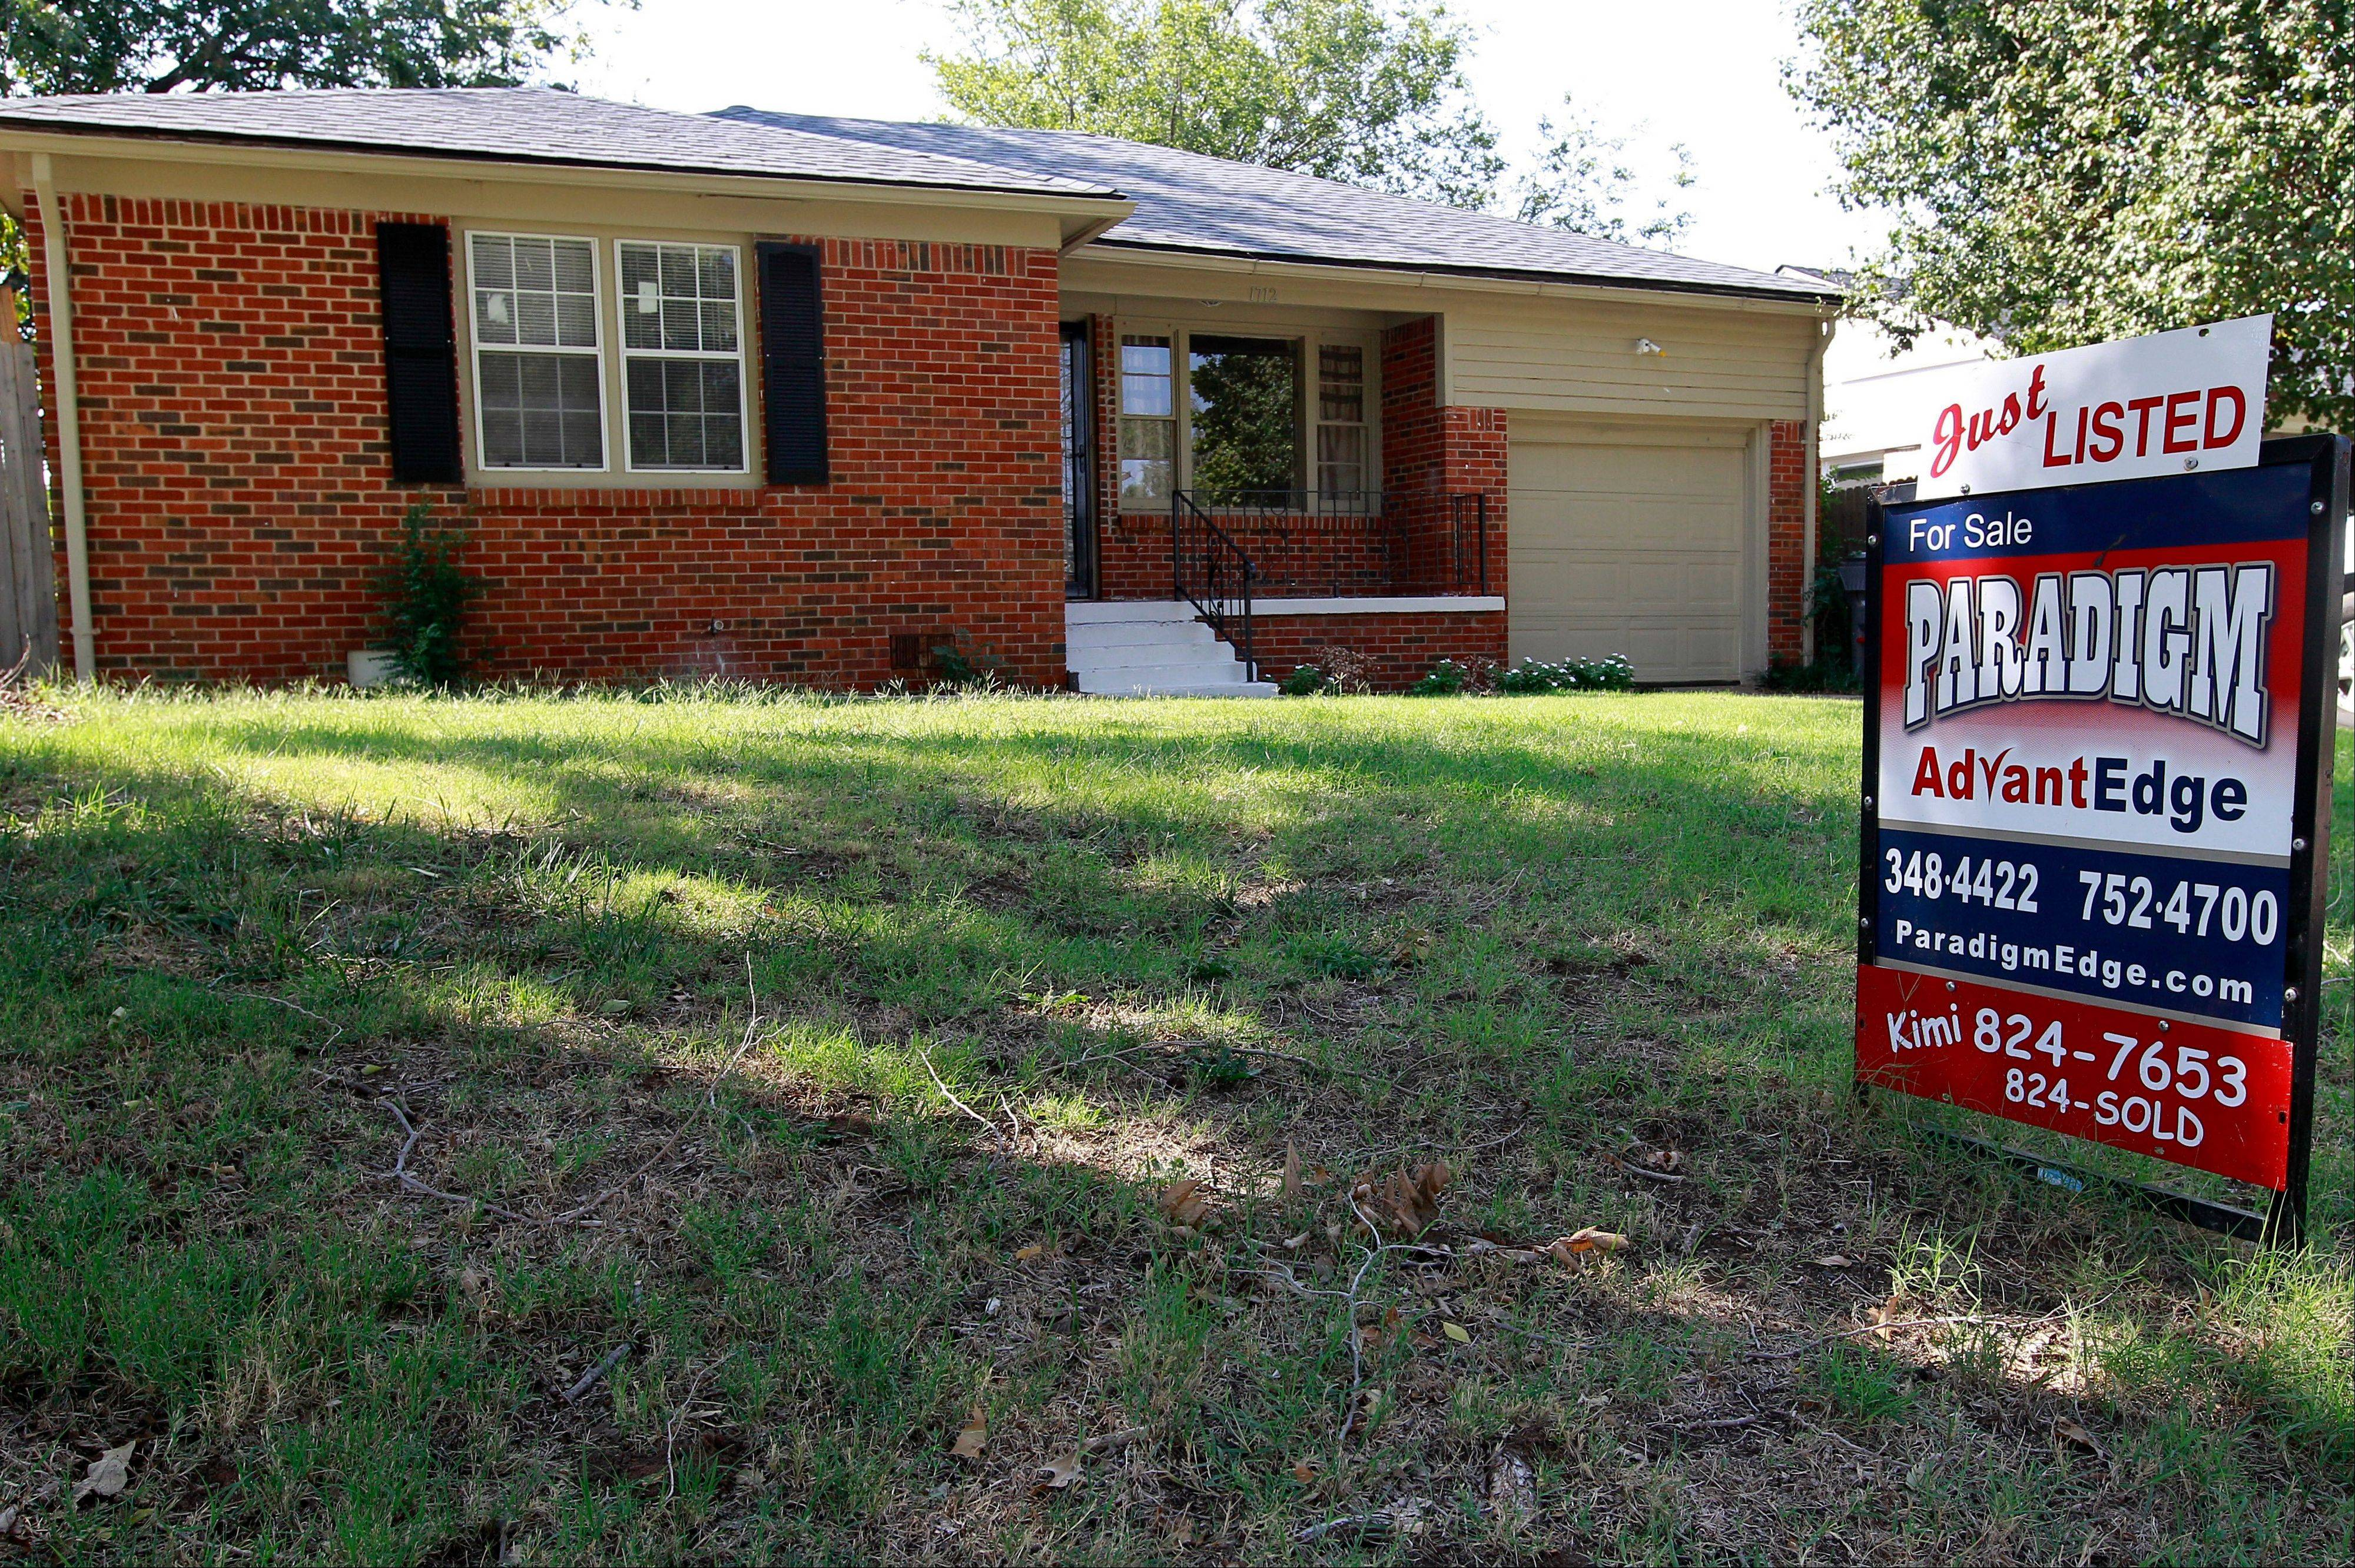 Average U.S. rates on fixed mortgages fell again to new record lows. The decline suggests the Federal Reserve's stimulus efforts may be having an impact on mortgage rates. Mortgage buyer Freddie Mac said Thursday, Sept. 27, 2012, the rate on the 30-year loan dropped to 3.40 percent. That's down from last week's rate of 3.49 percent, which was the lowest since long-term mortgages began in the 1950s.